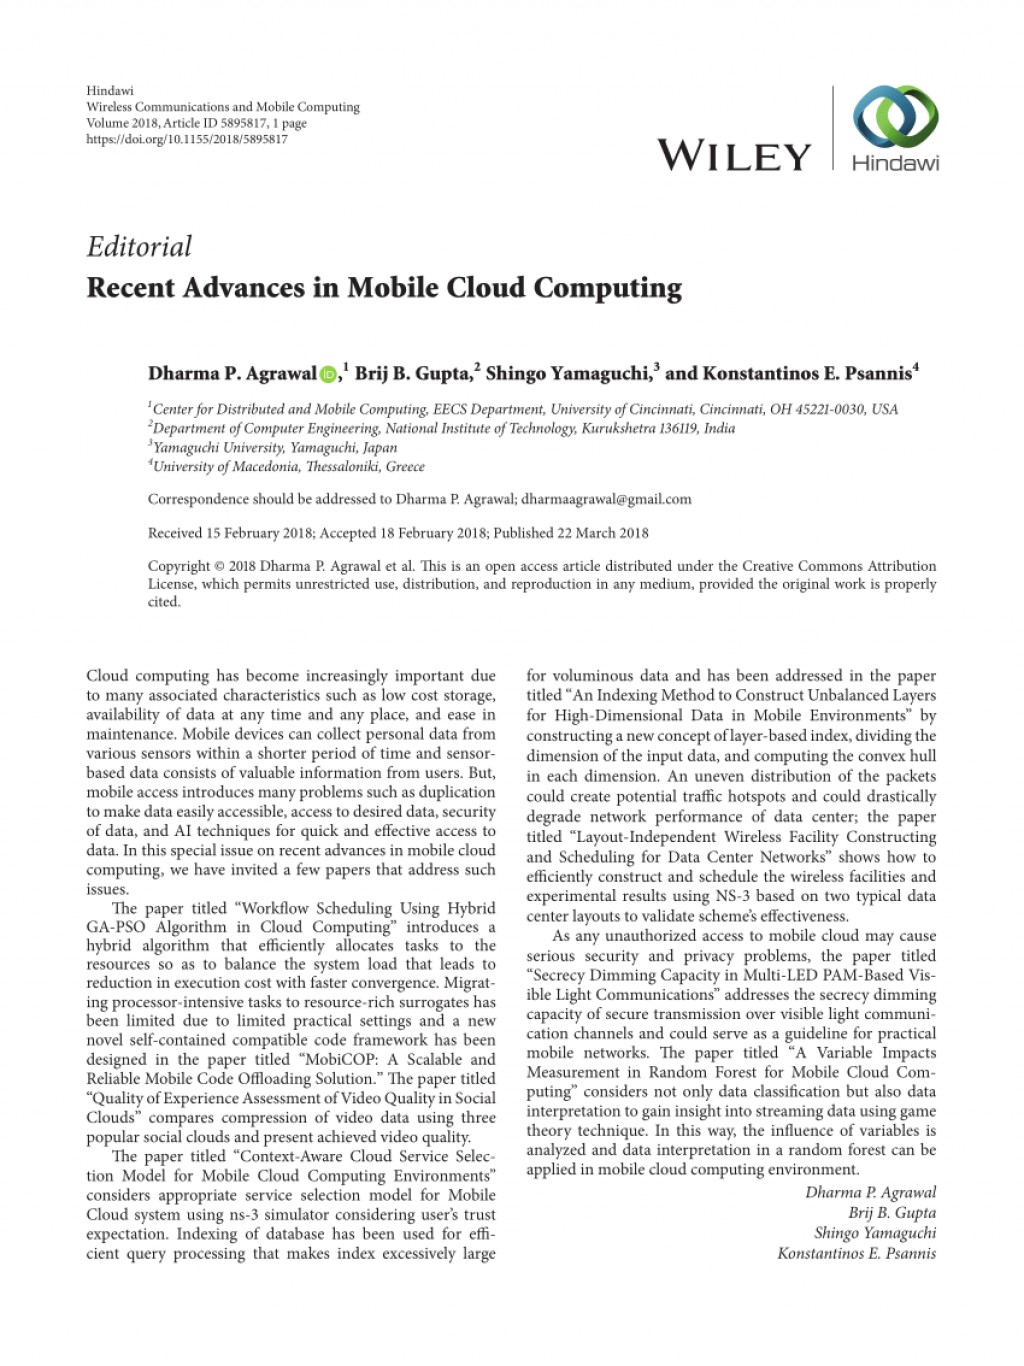 003 Largepreview Research Paper Cloud Computing Astounding 2018 Pdf Large